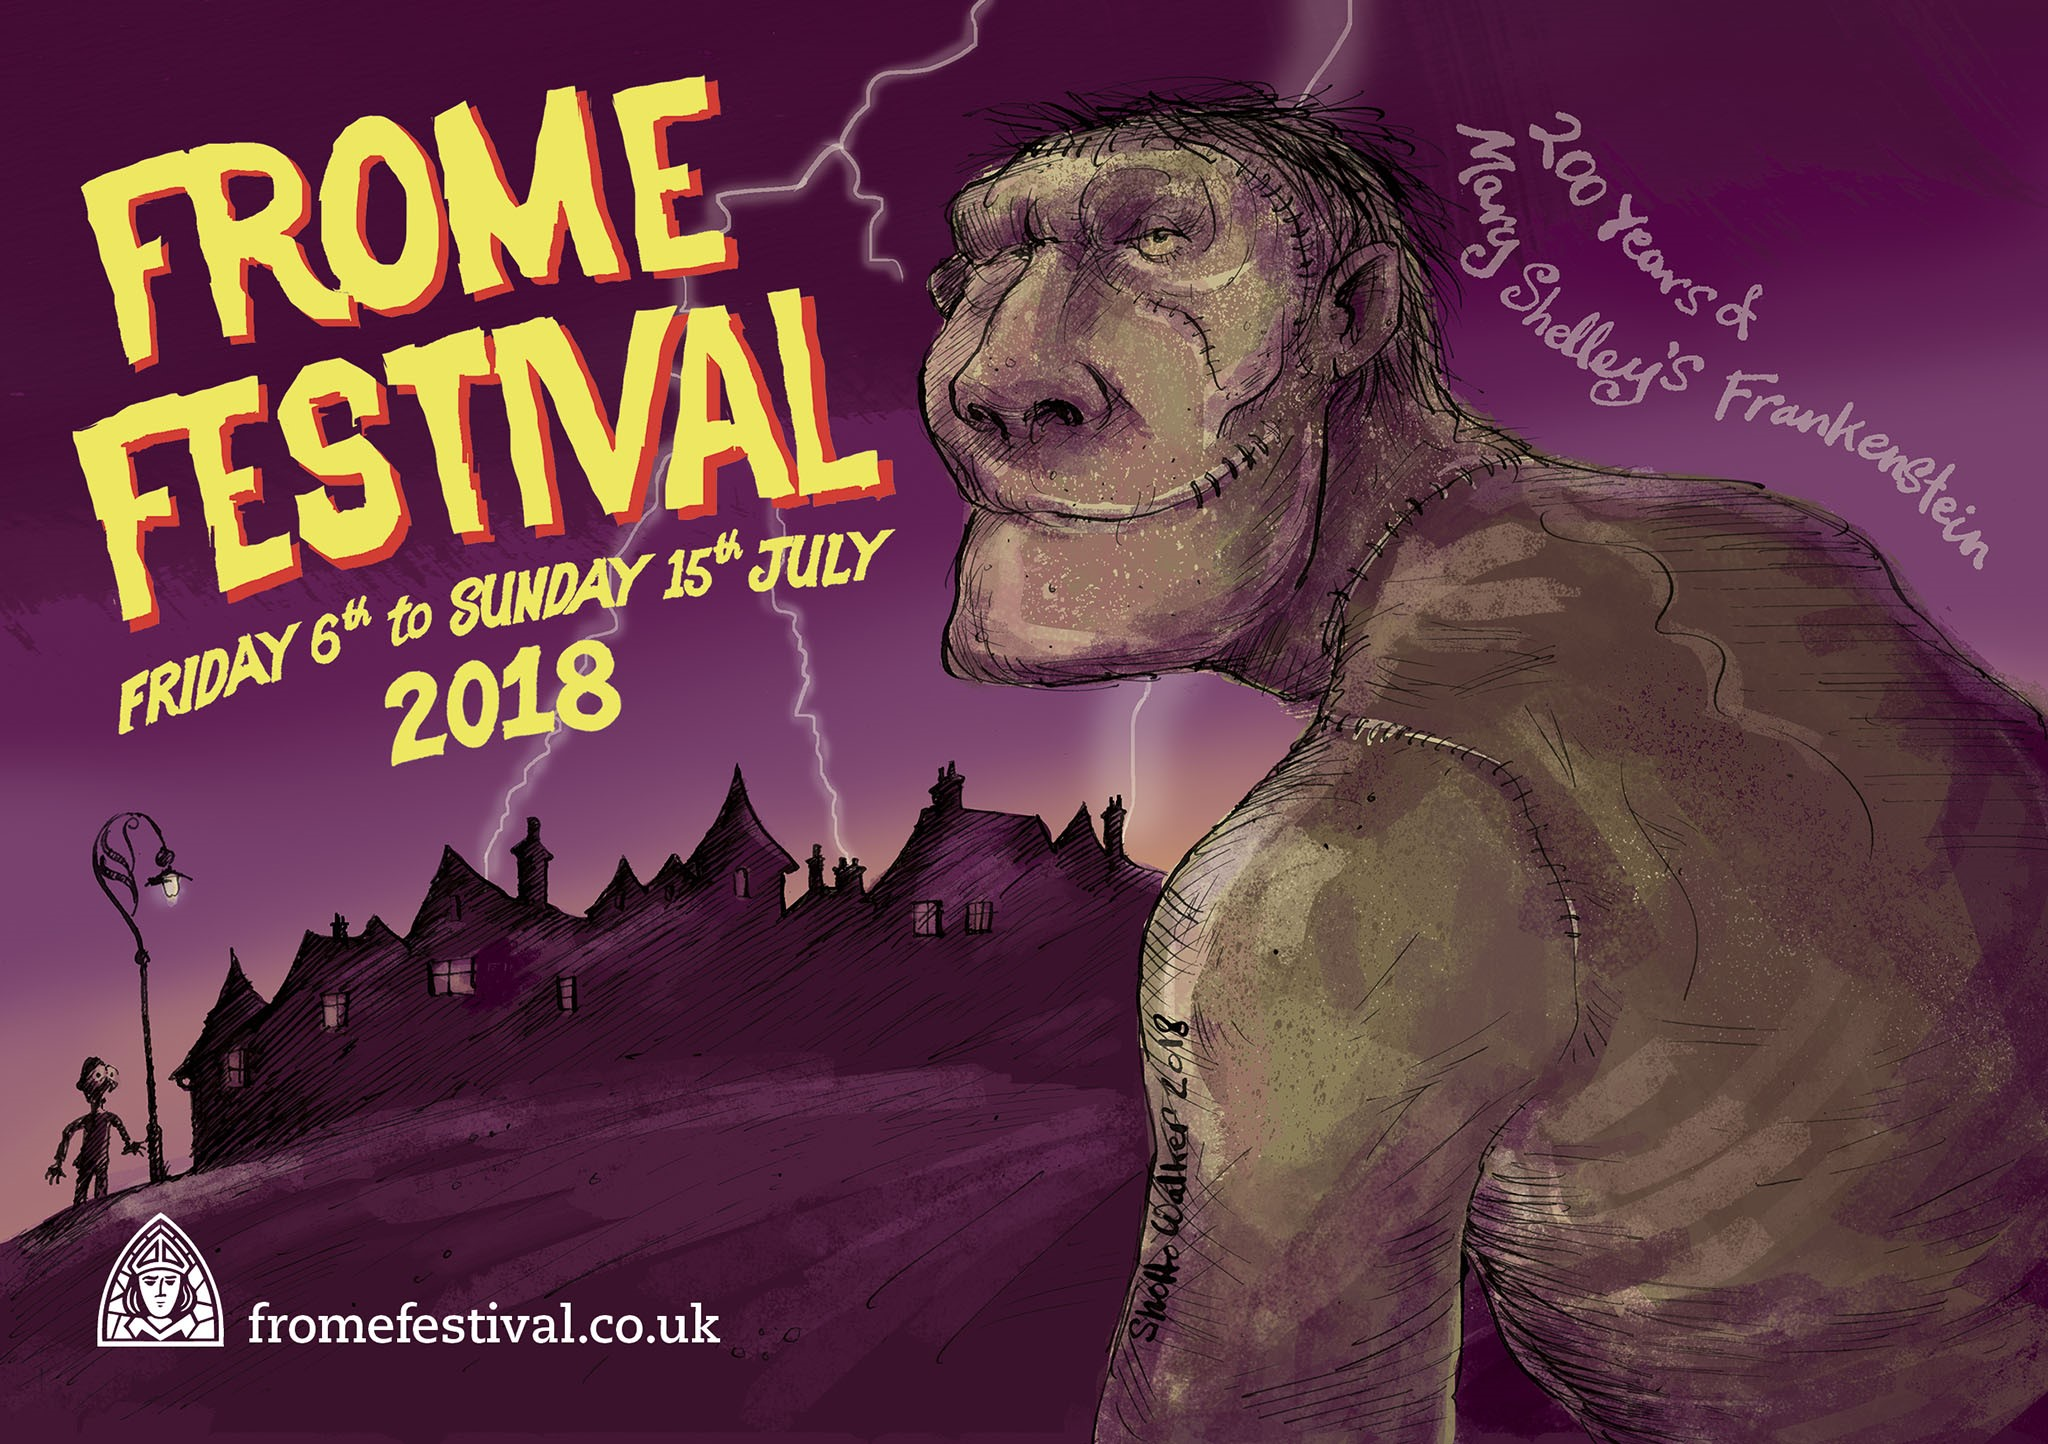 after a year of planning and to celebrate the 200th anniversary of mary shelleys frankenstein the frome festival will feature a monster line up